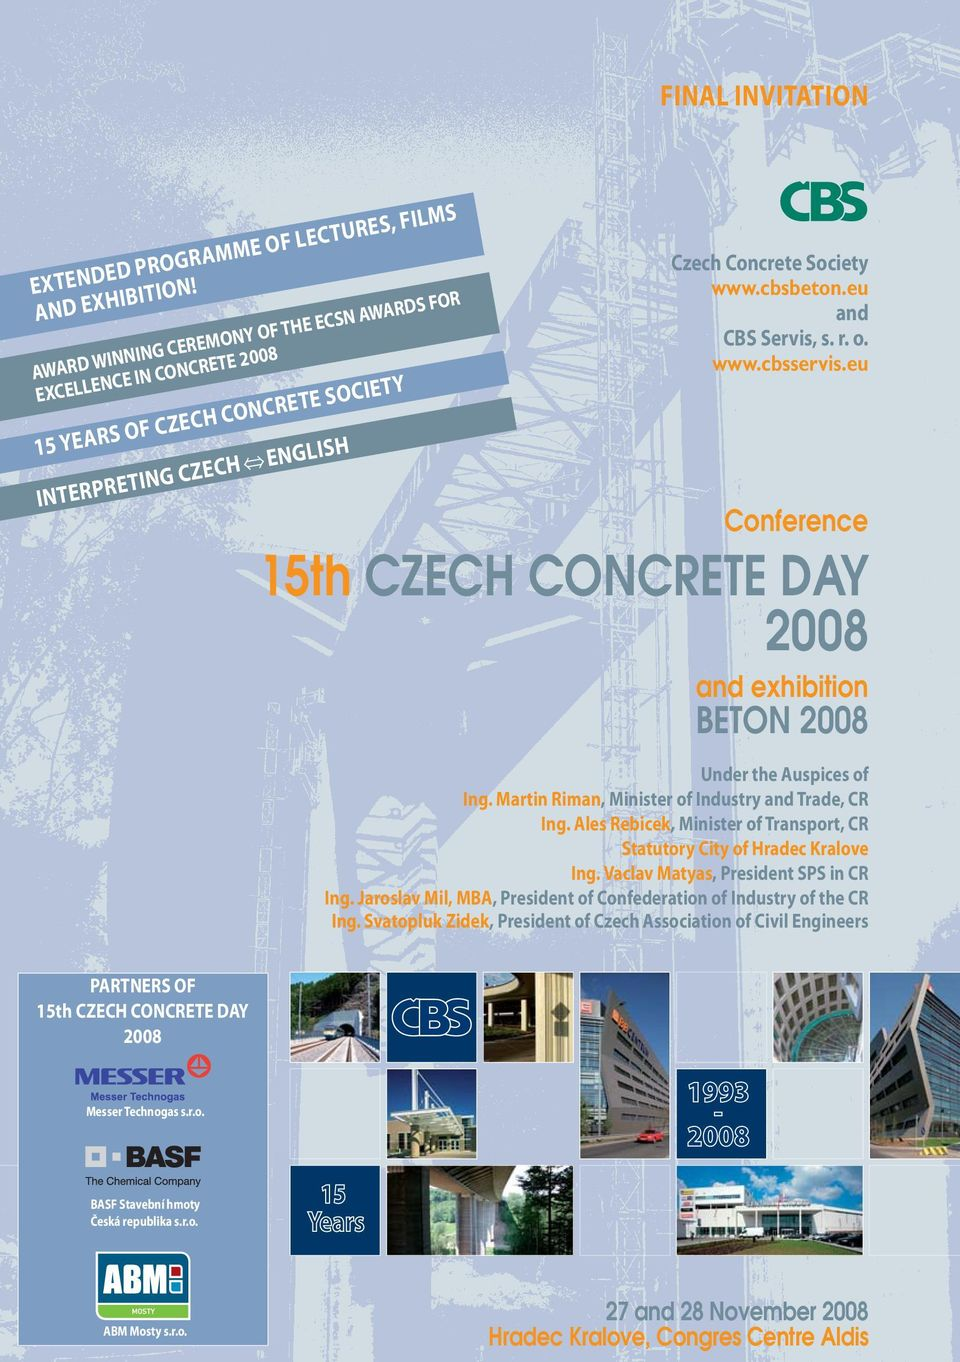 www.cbsservis.eu Conference 15th CZECH CONCRETE DAY 2008 and exhibition BETON 2008 Under the Auspices of Ing. Martin Riman, Minister of Industry and Trade, CR Ing.